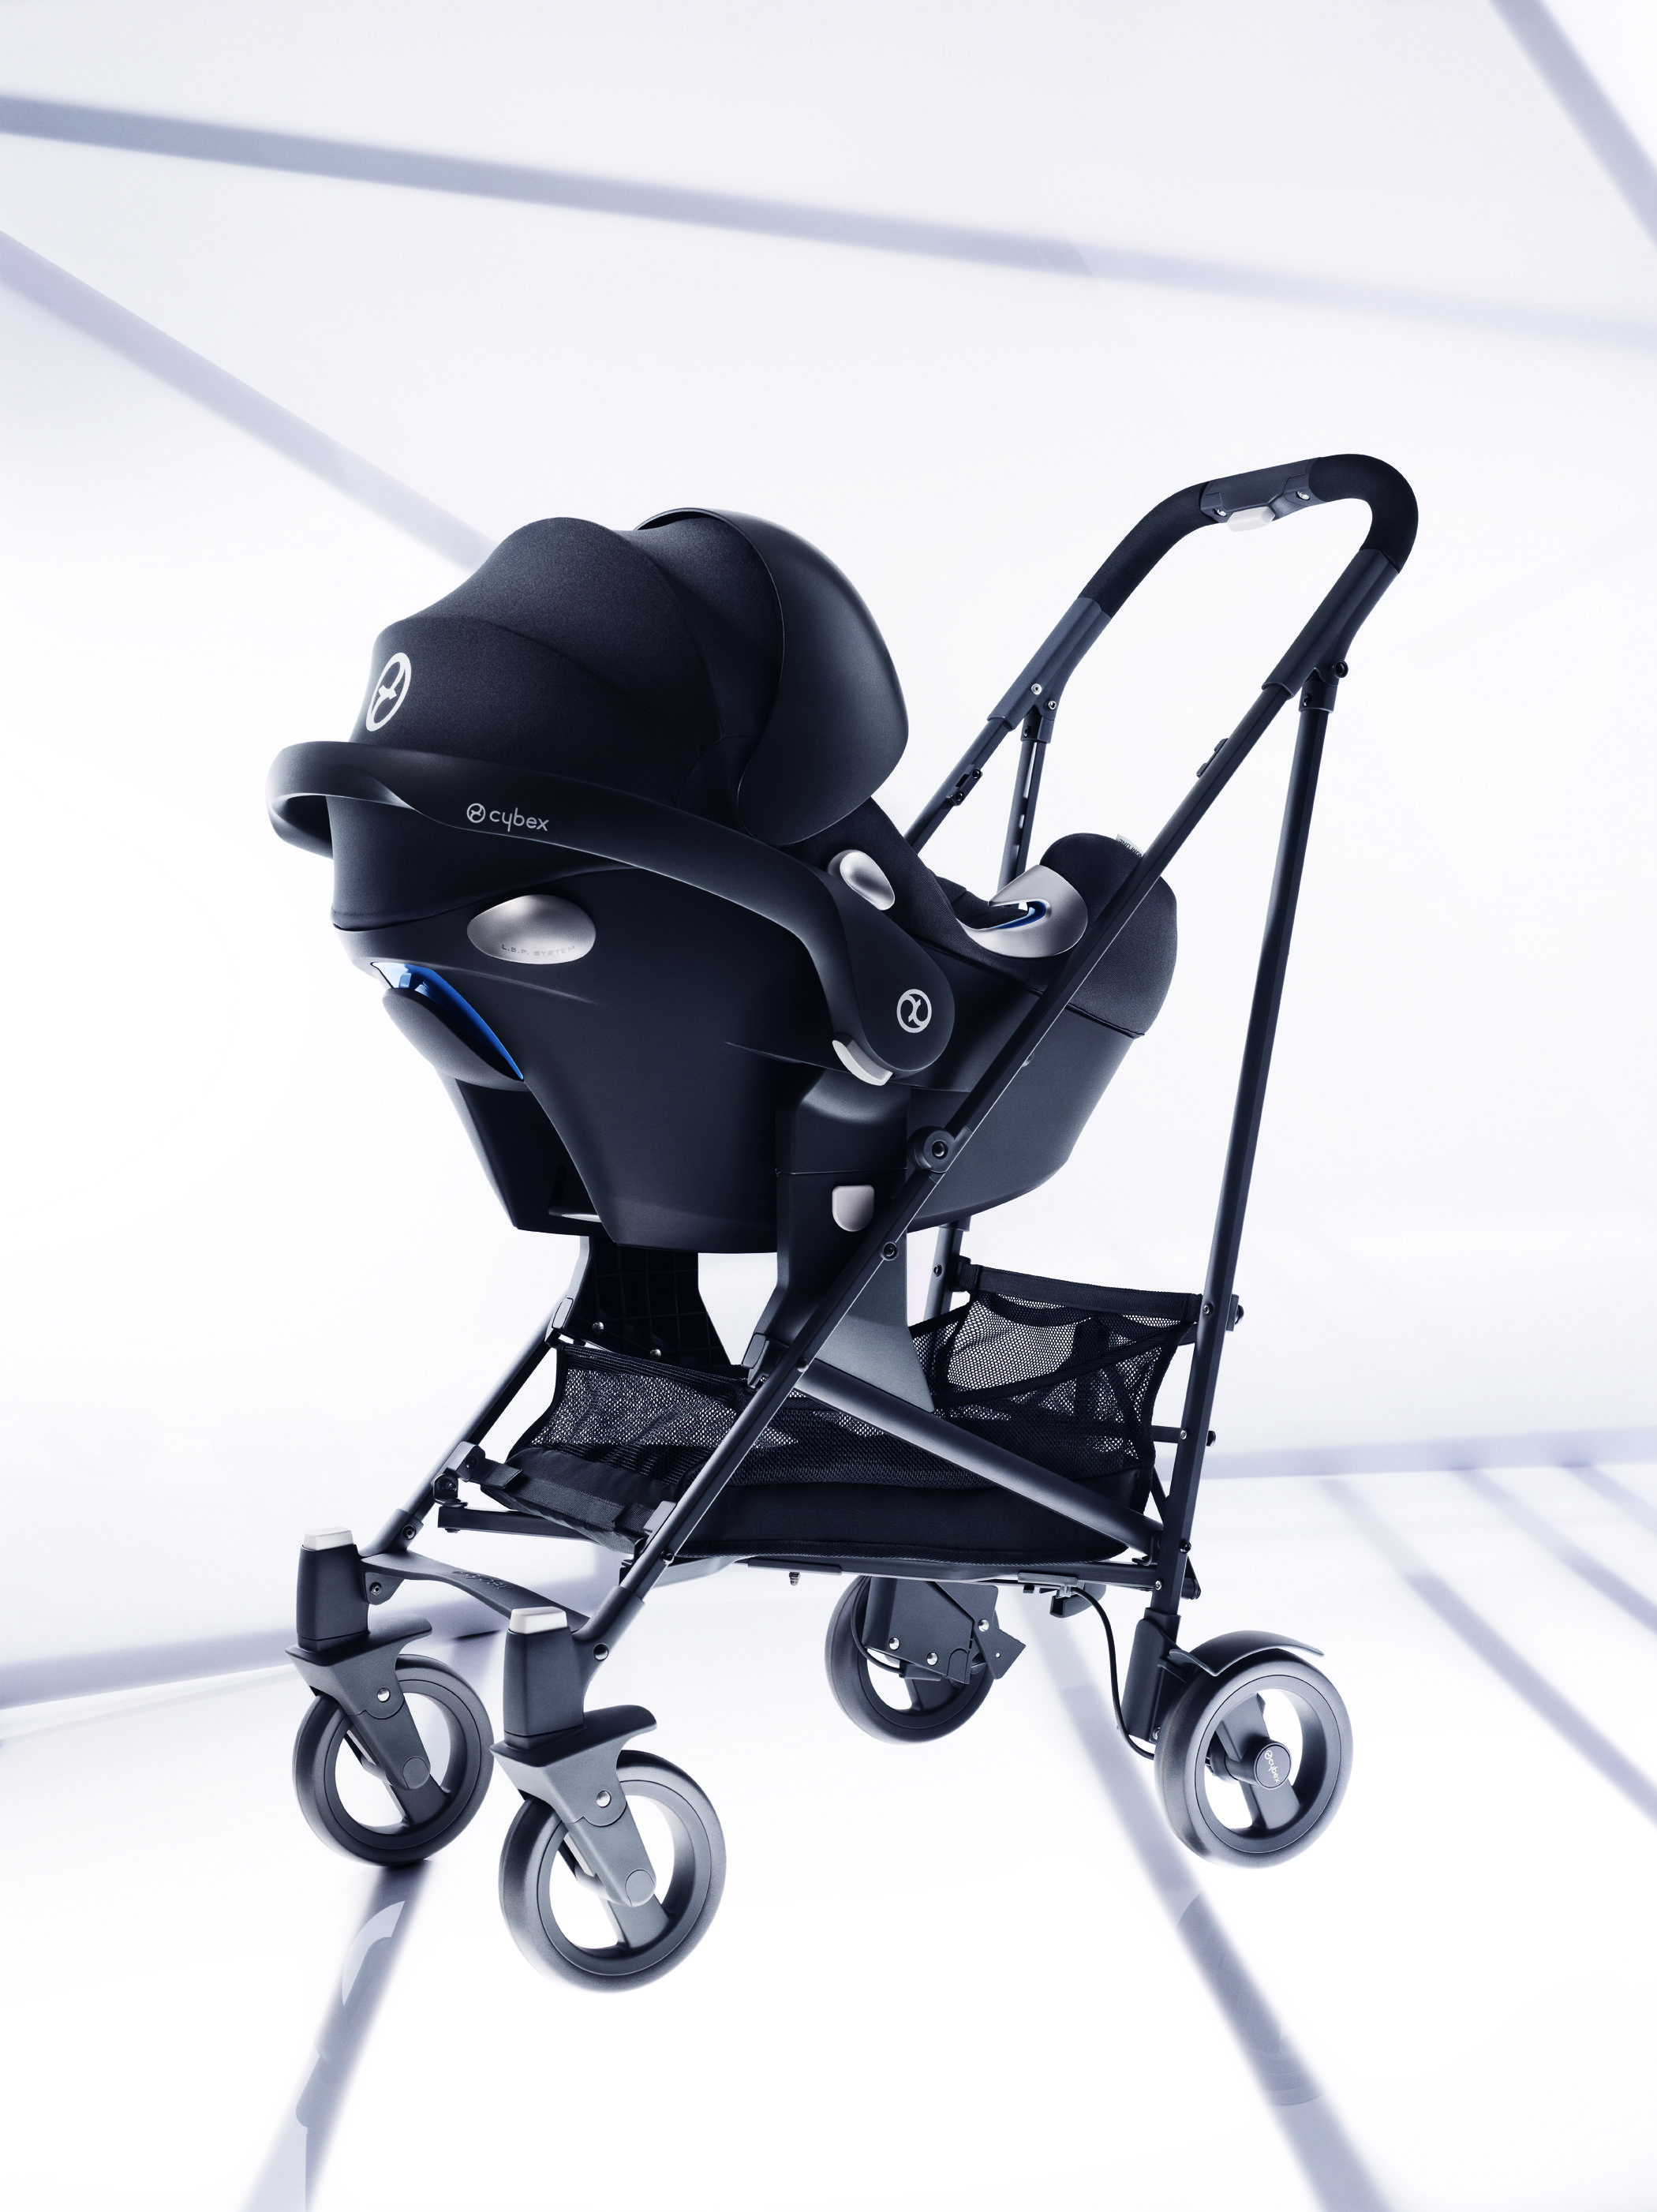 CYBEX Aton Q in charcoal with the CYBEX Callisto. Baby